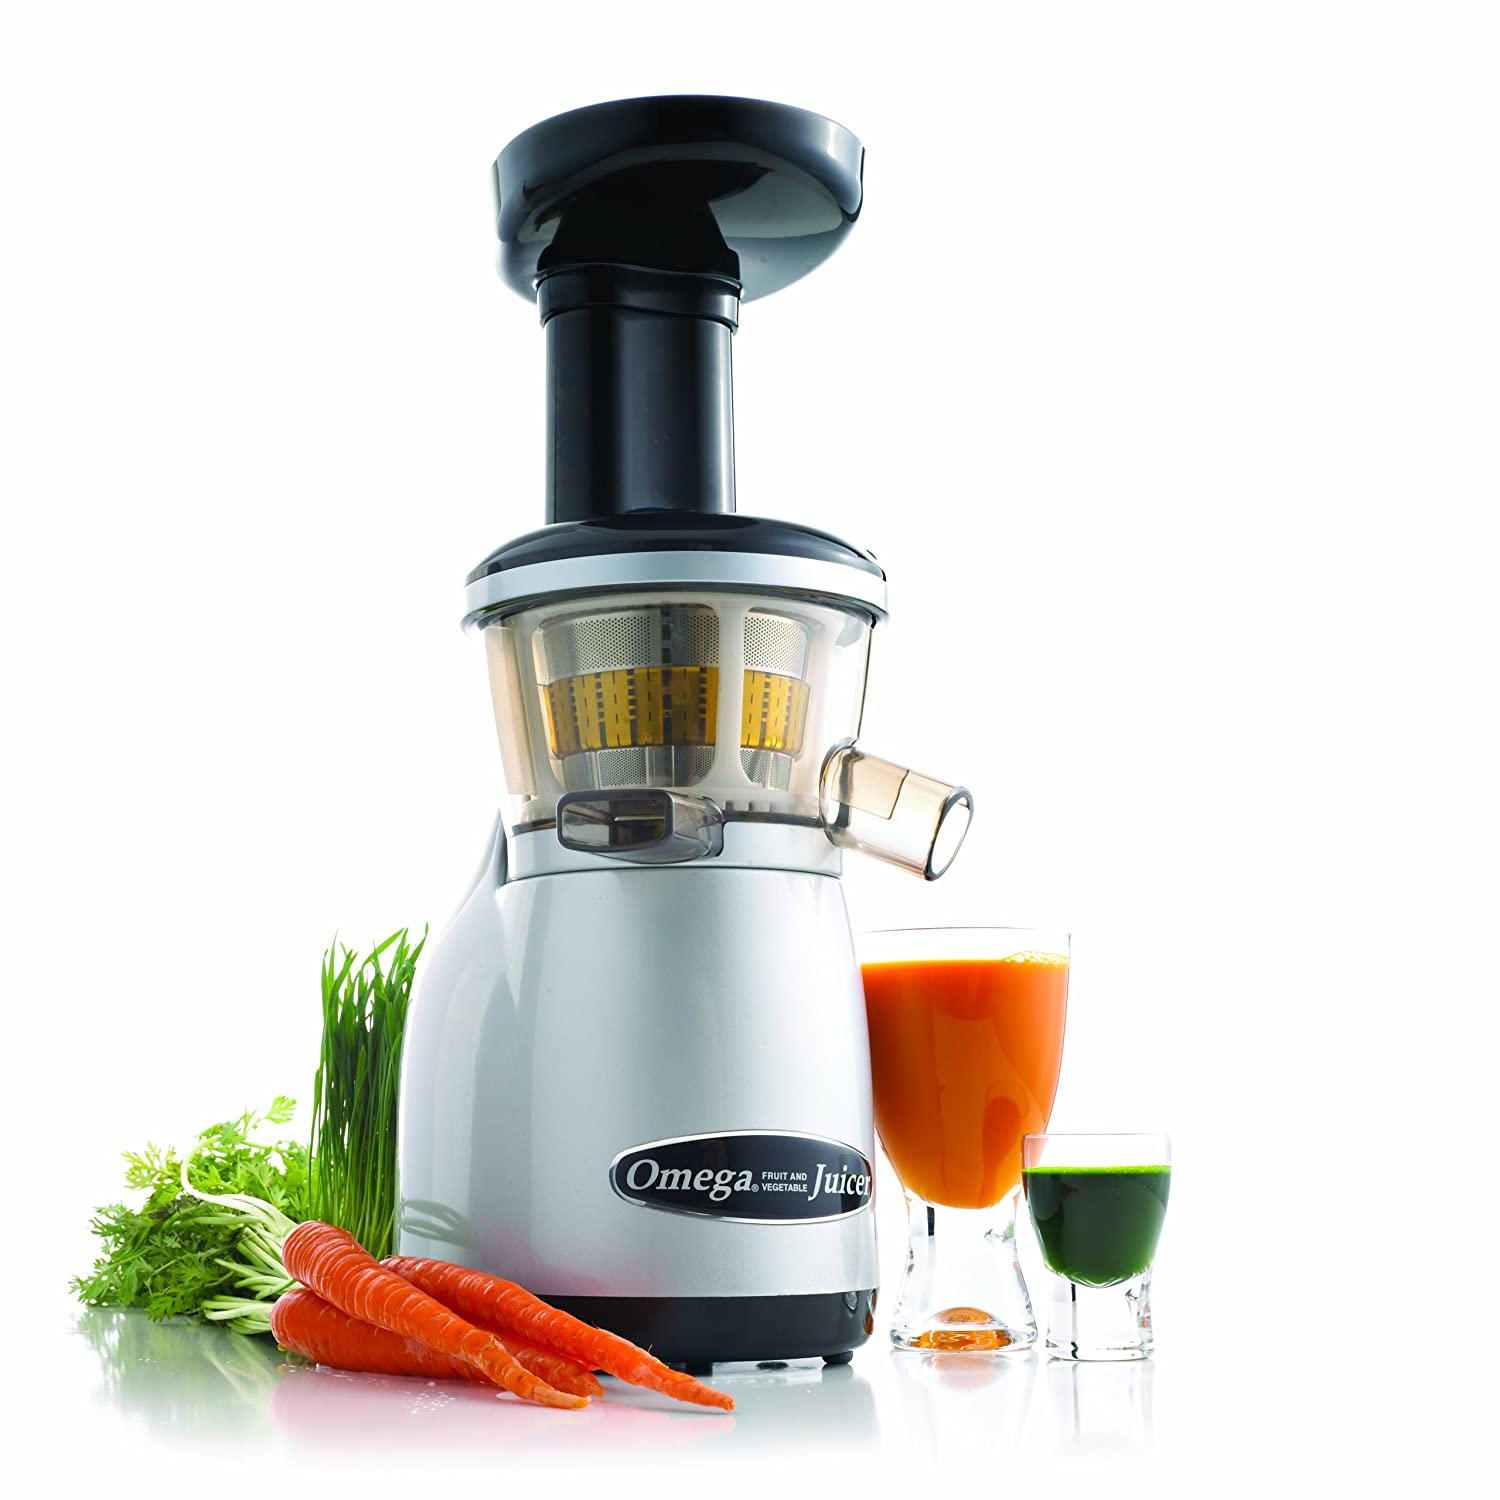 Omega VRT350 Heavy Duty Low Speed Vertical Masticating Juicer with Dual-Stage Extraction Creates Fruit and Vegetable Juice Compact Design Quiet Motor, 150-Watt, Silver